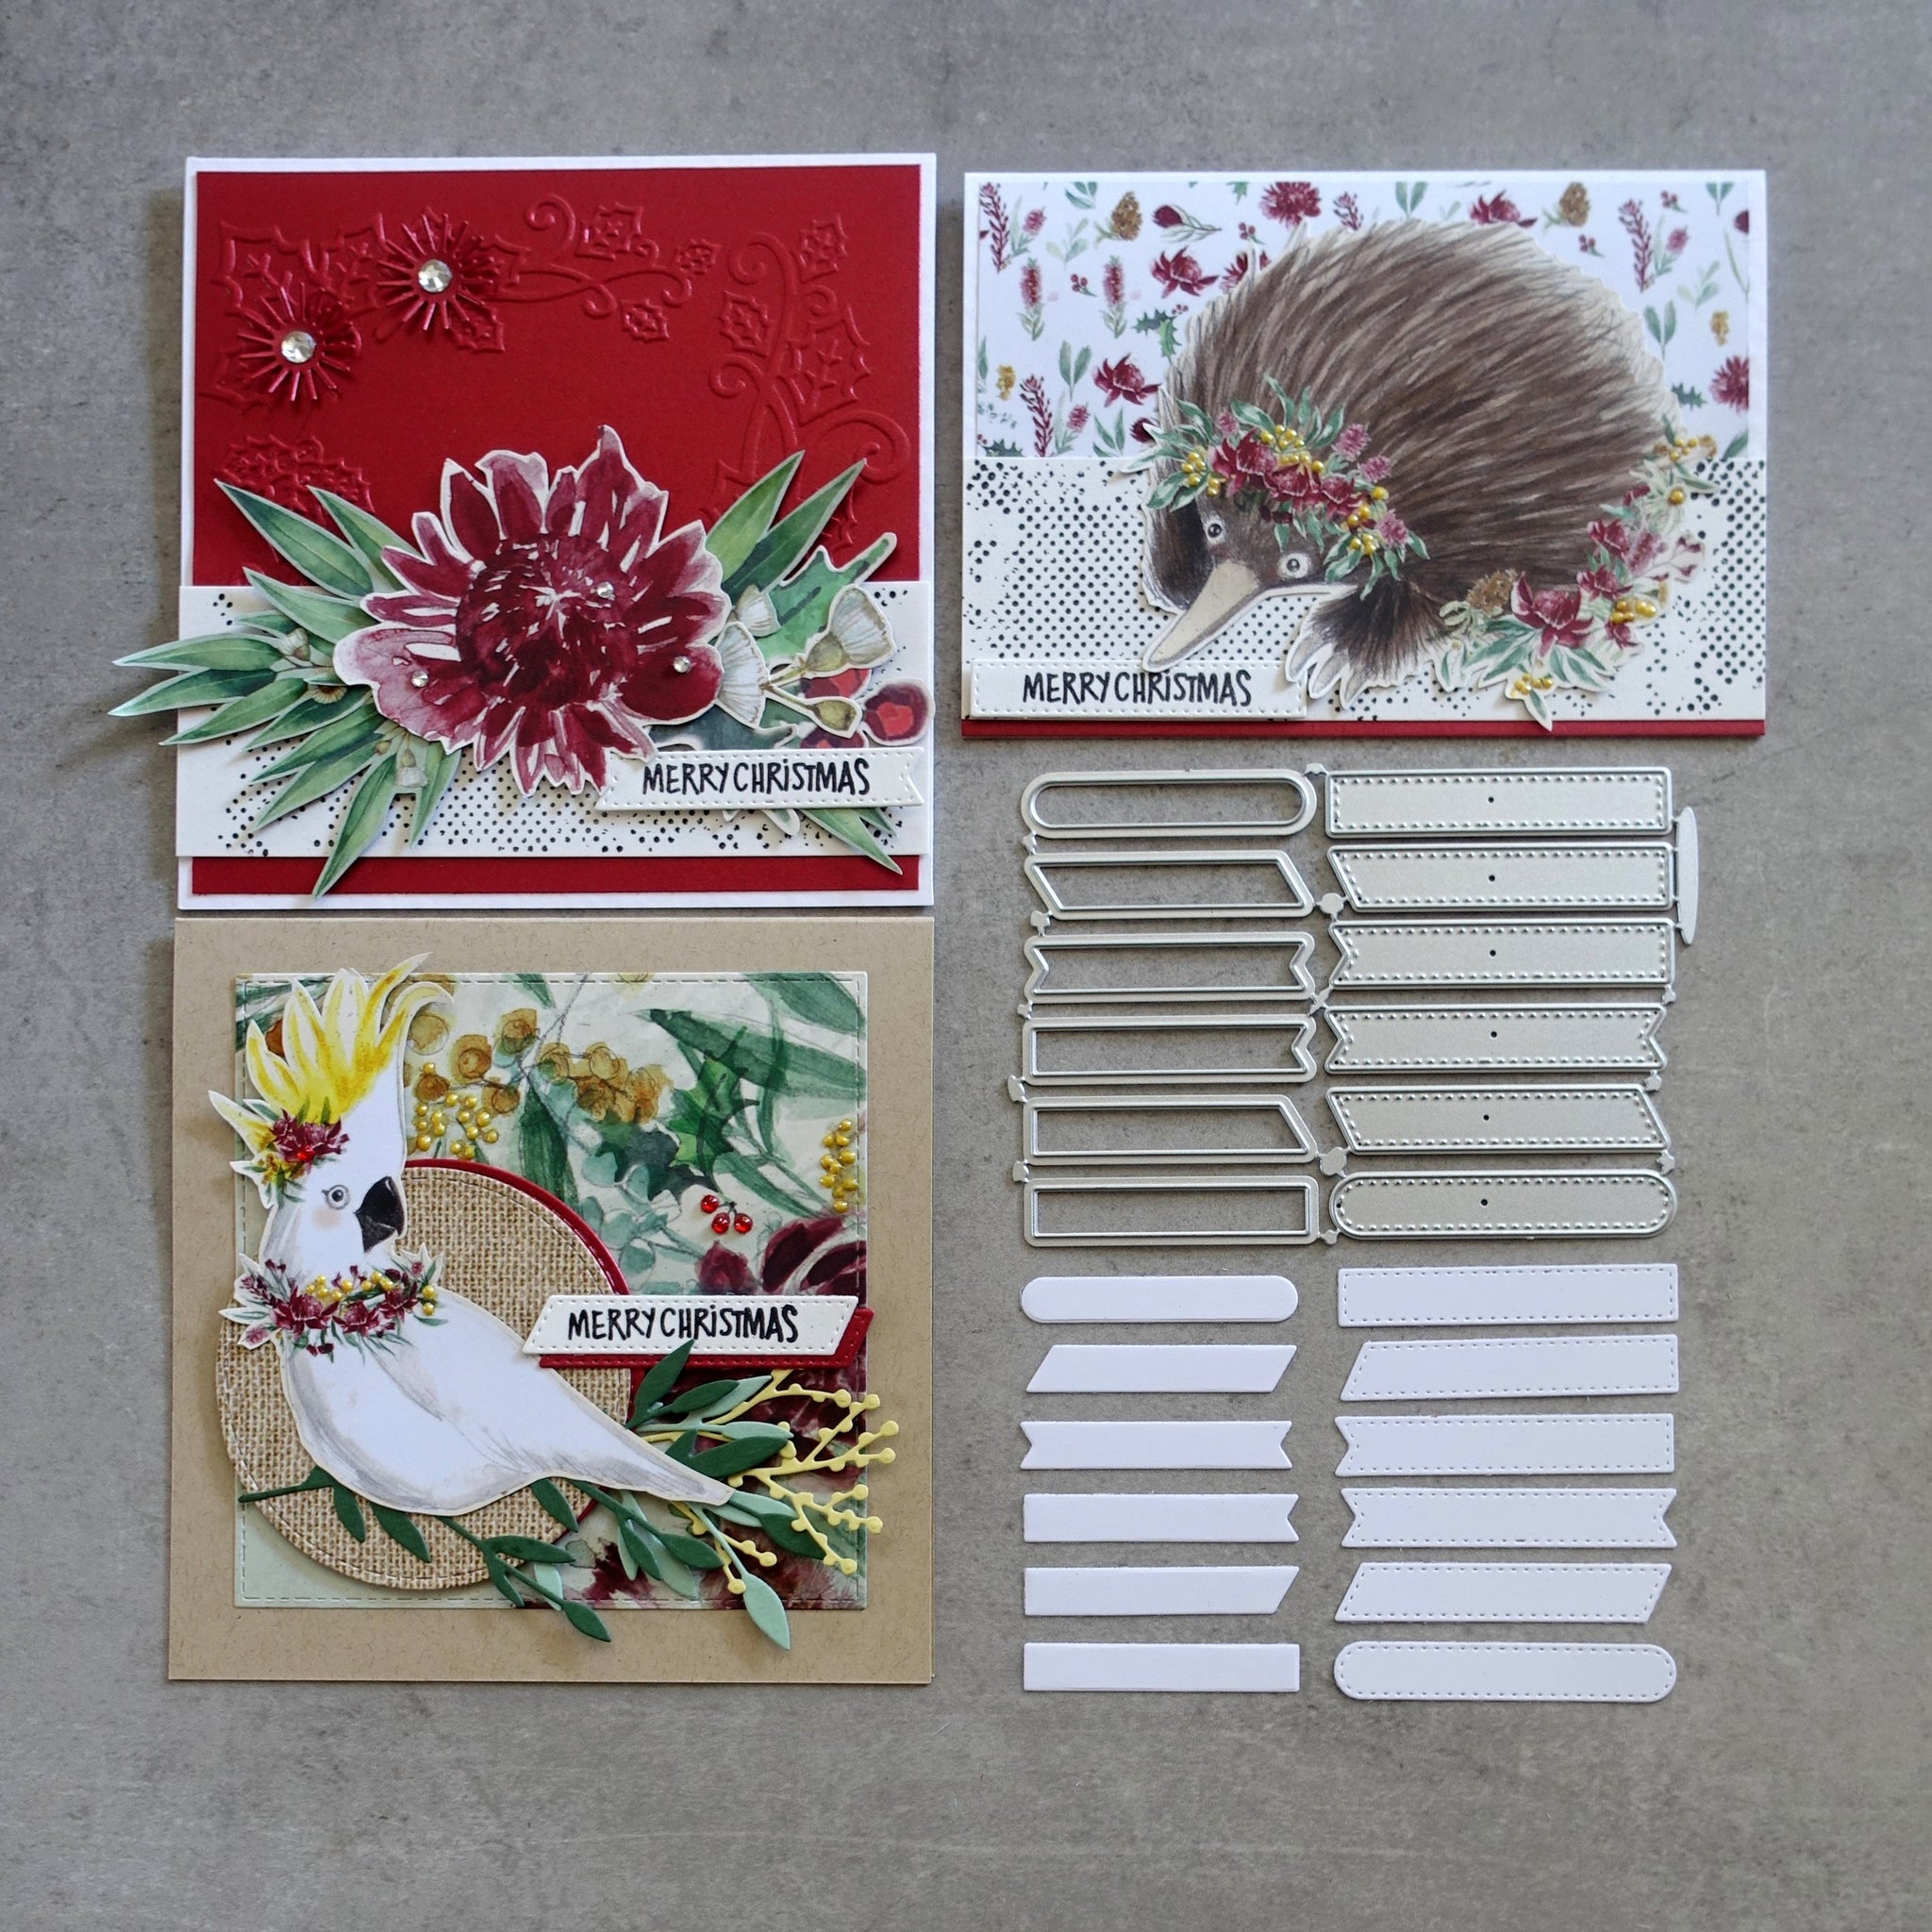 shopaperartz SMALL STITCHED LABELS & TAGS SET OF 12 CHRISTMAS BIRTHDAY CUTTING DIES CARDMAKING FITS SIZZIX CUTTLEBUG